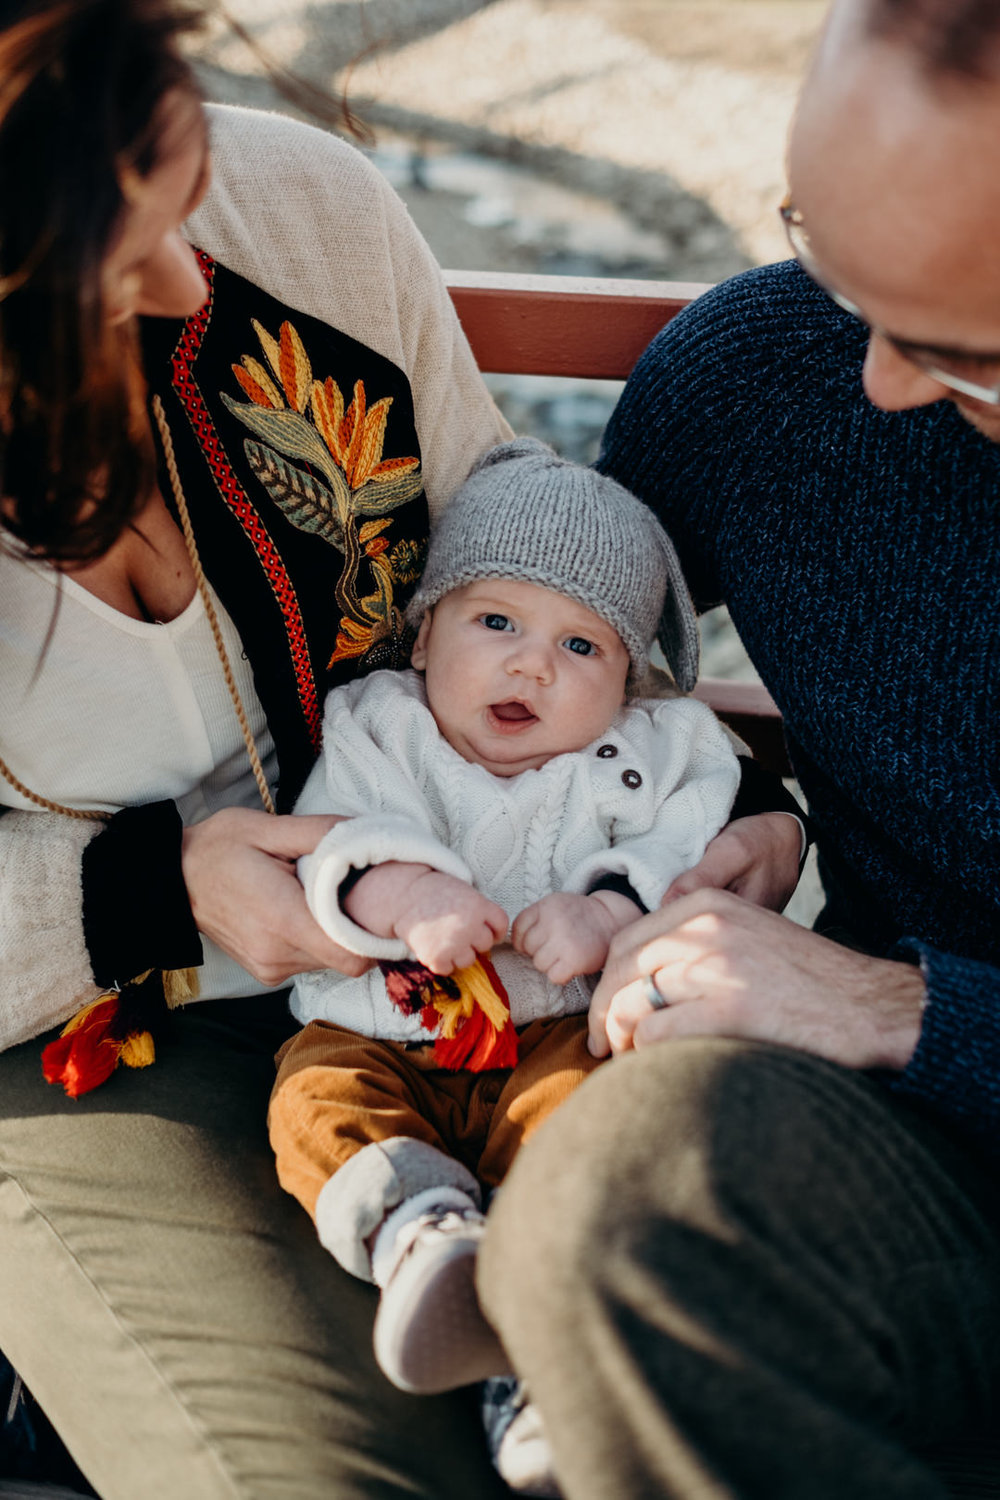 20171210_Kansas City Lifestyle Family Photographer _3.jpg